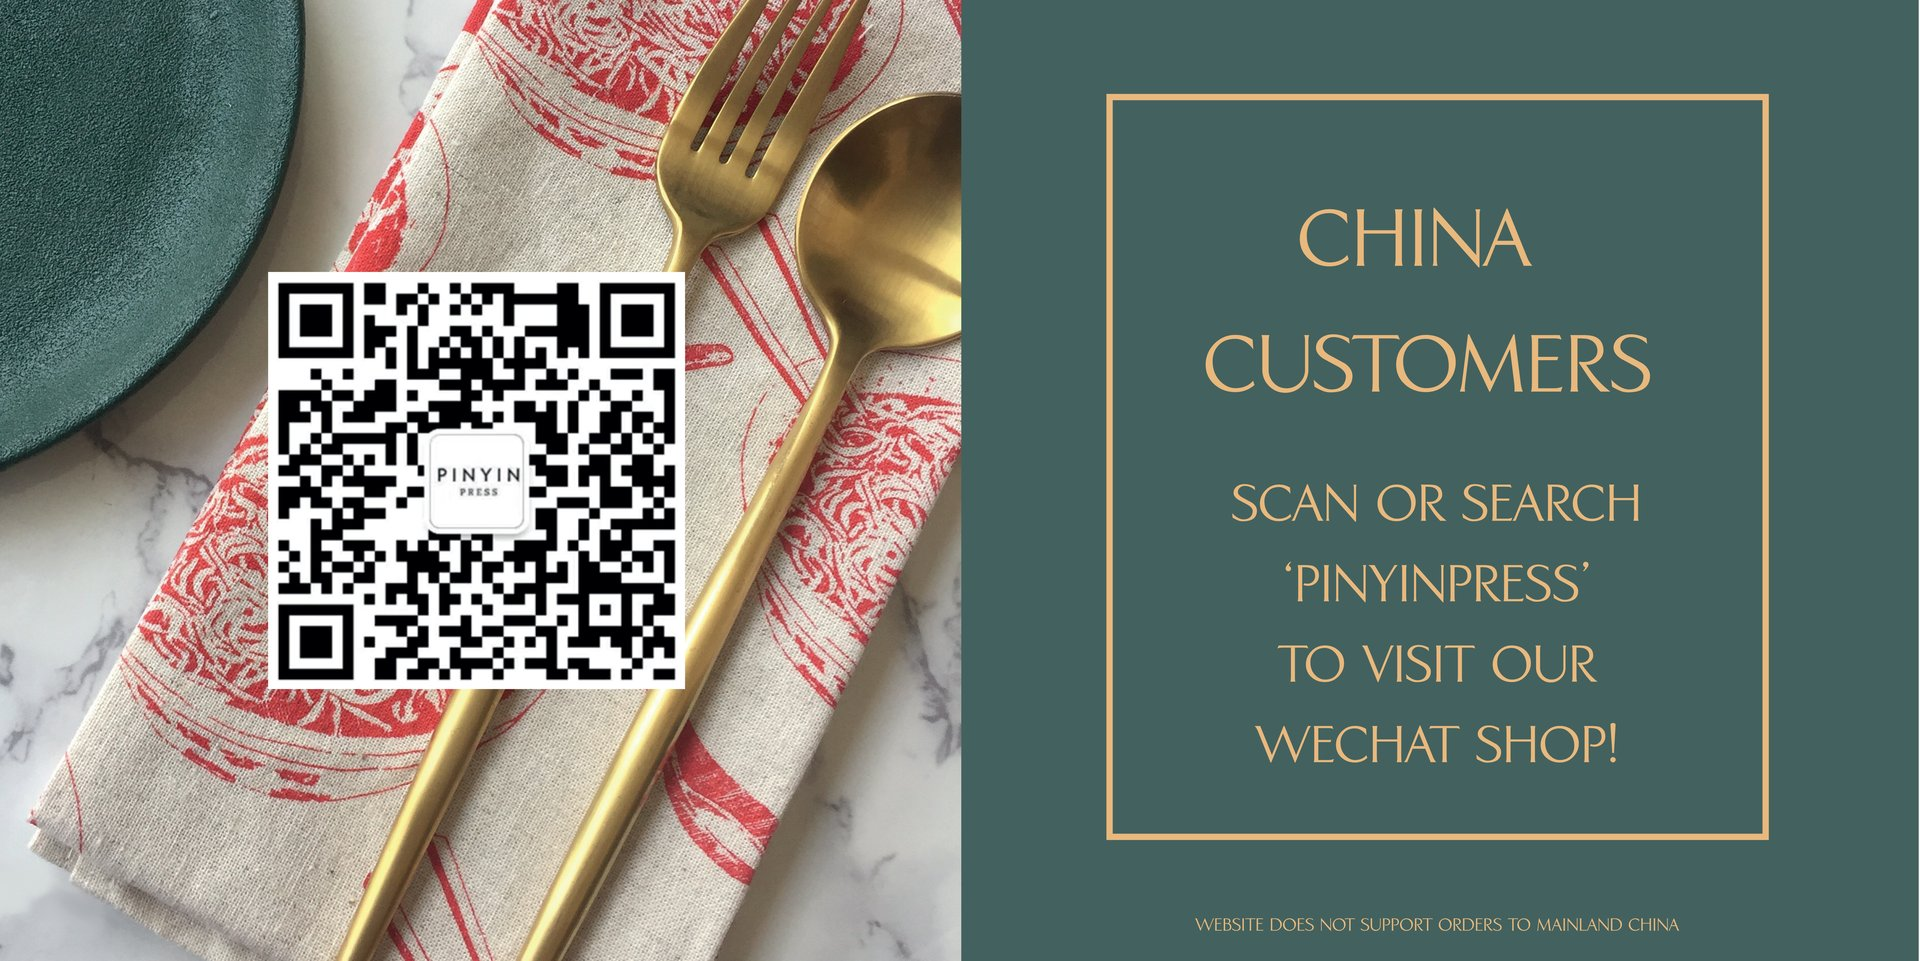 pinyin-press-qr-code-china-customers